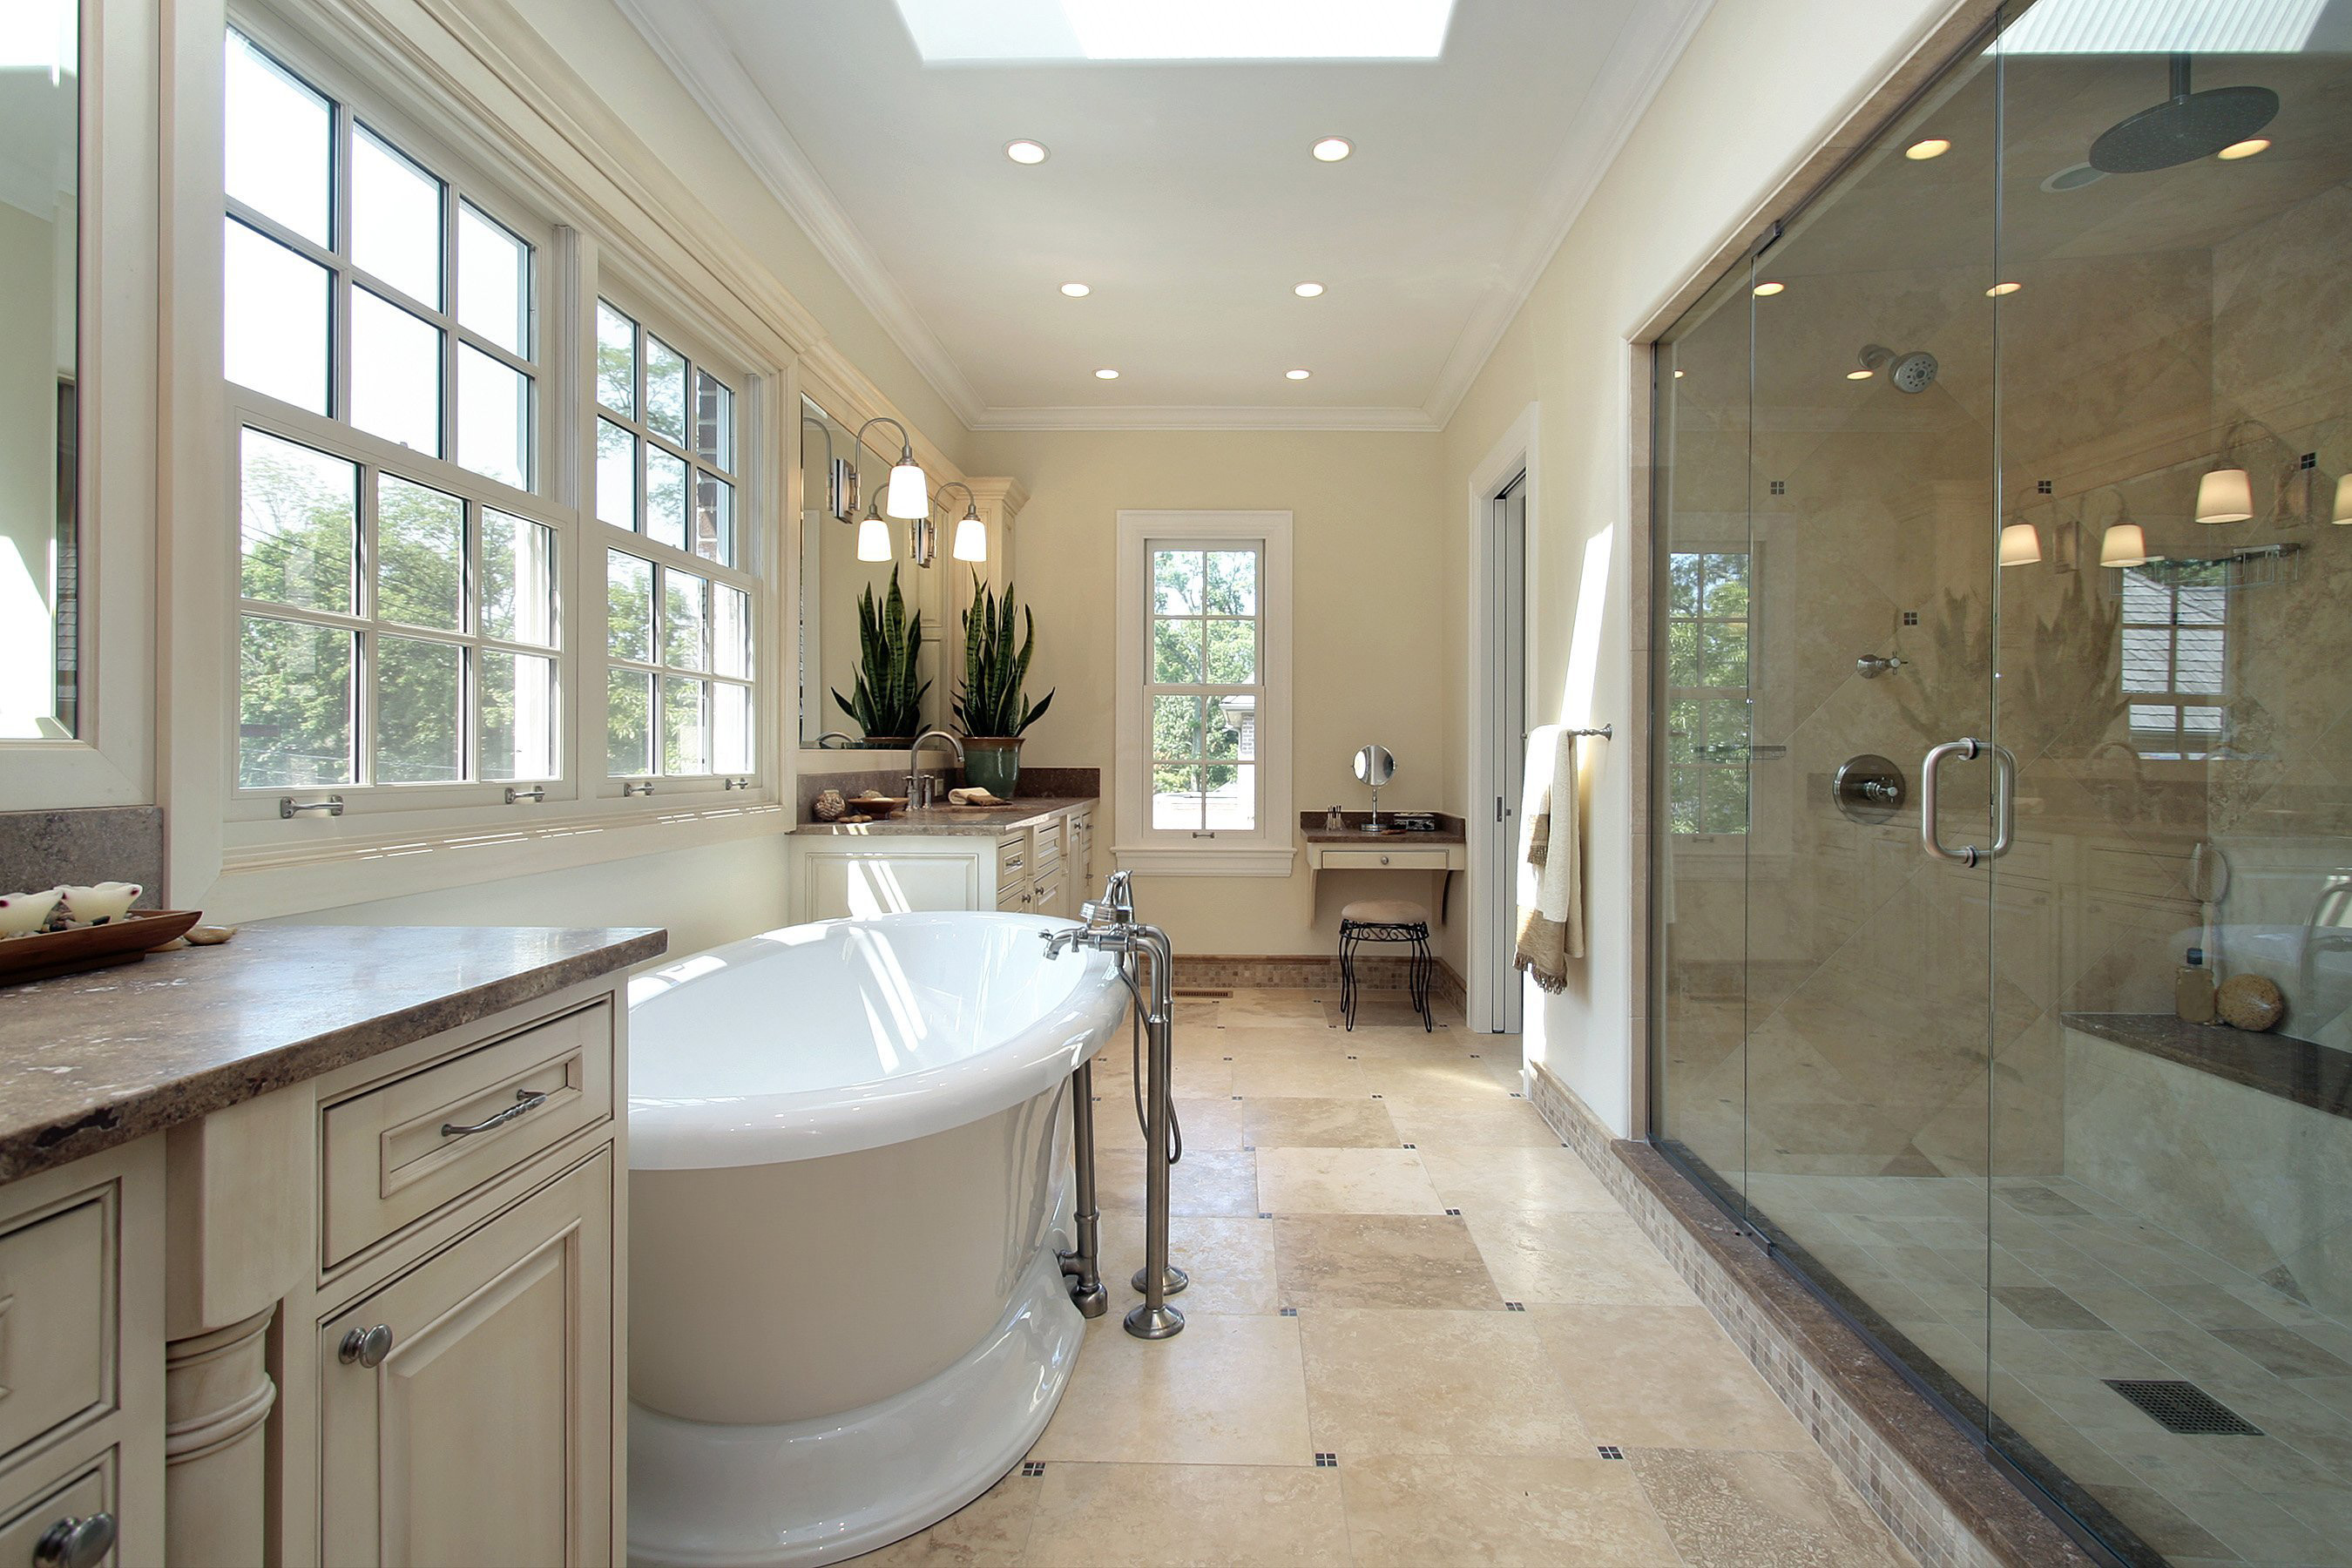 Cheap Bathtub Ideas Best Ideas To Ensure An Effective And Efficient Bathroom Remodel